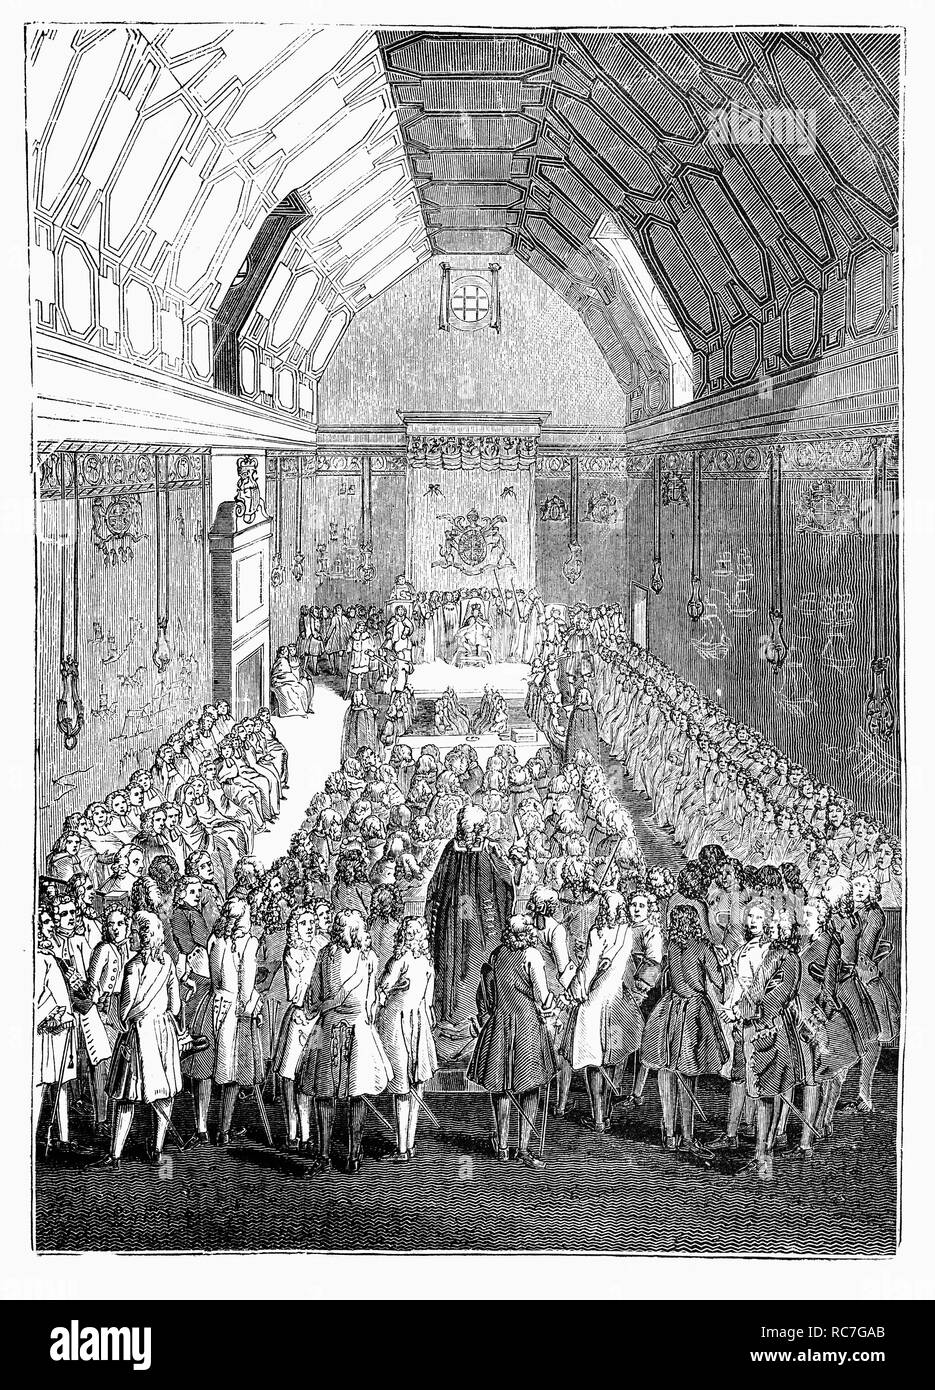 The House of Lords, during the reign of King George II. Like the House of Commons, it meets in the Palace of Westminster, but was more powerful than the House of Commons. The Lower House continued to grow in influence, reaching a zenith during the 17th century, when following the English Civil War, the House of Lords was reduced to a largely powerless body. On 19 March 1649, the House of Lords was abolished by an Act of Parliament. After the Convention Parliament met in 1660 and the monarchy was restored, it again became the more powerful chamber of Parliament, until the 19th Century. - Stock Image